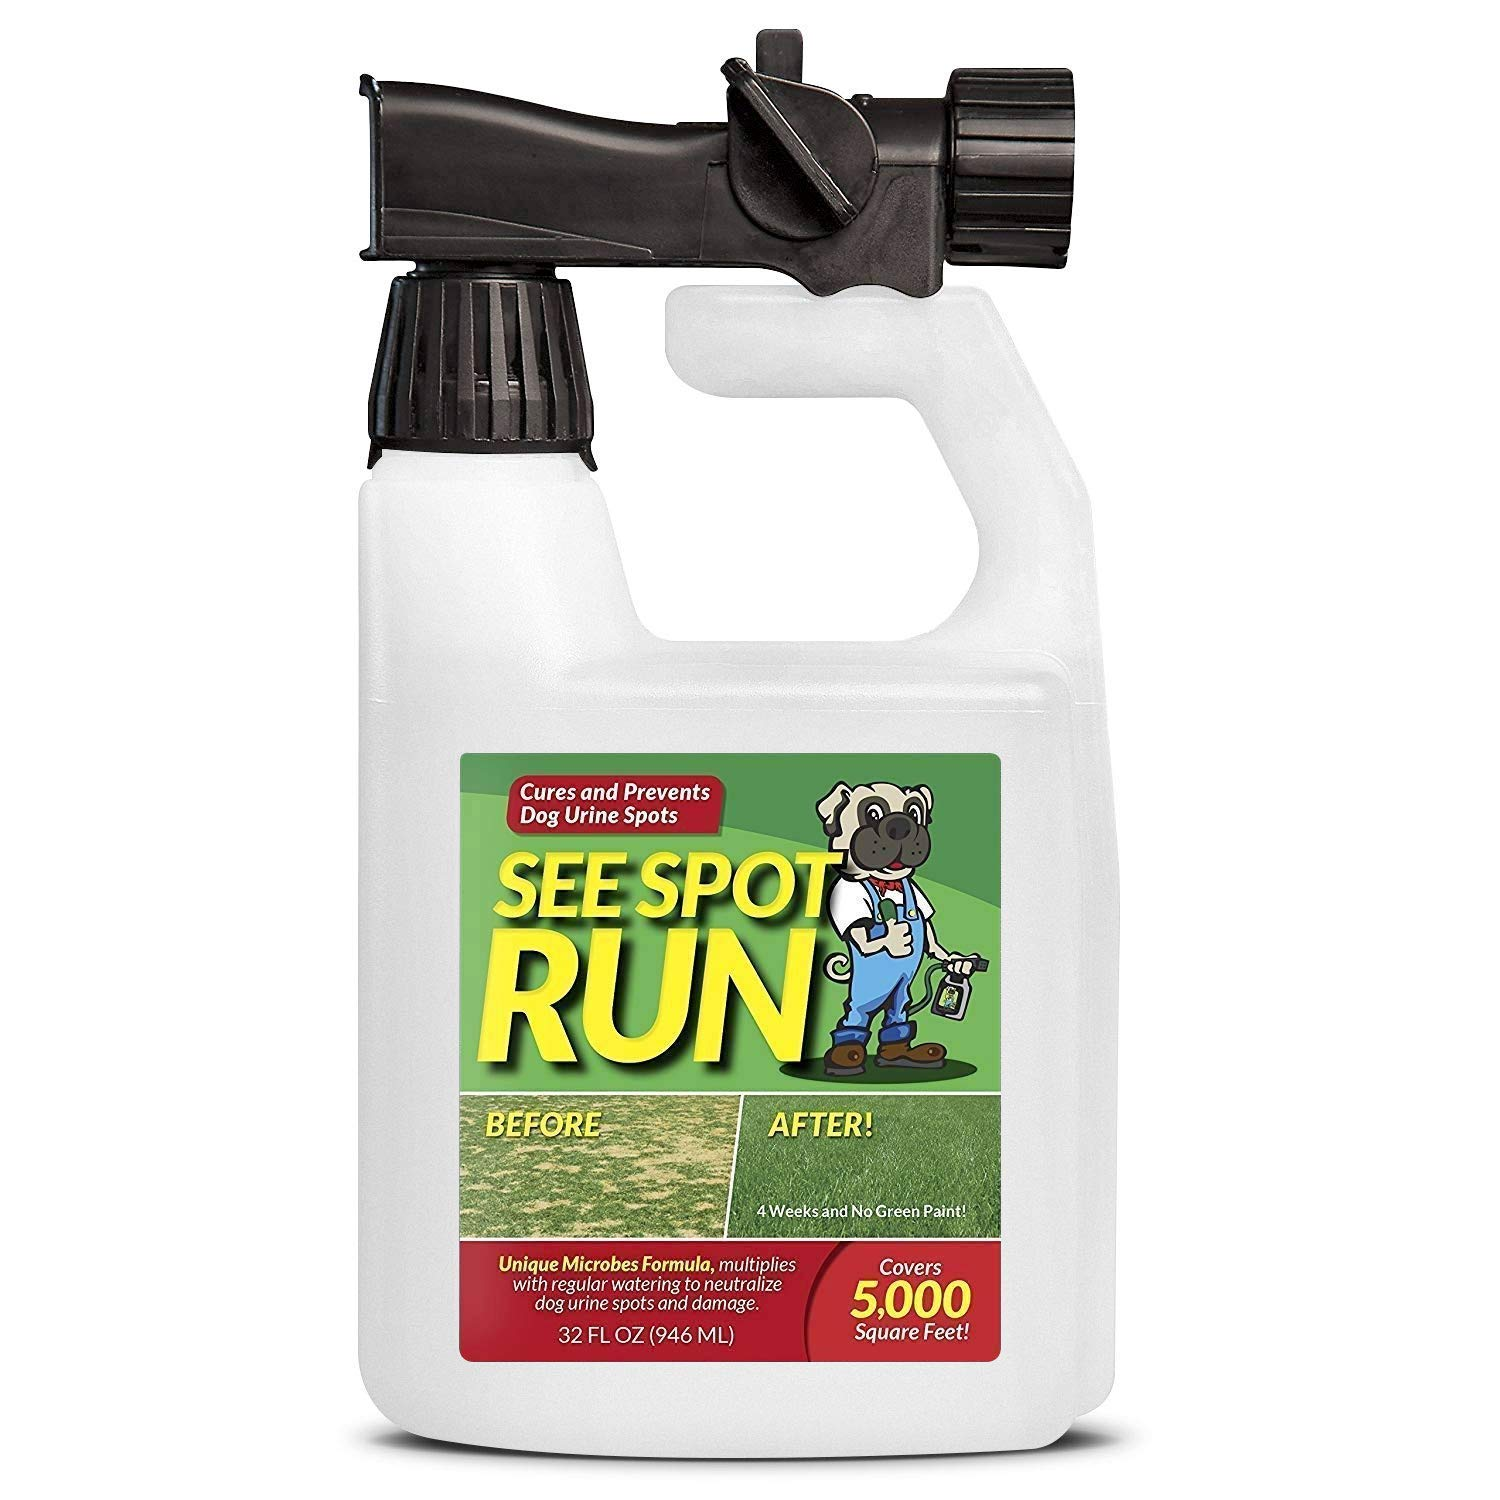 See Spot Run Lawn Protection Dog Urine Grass Saver That